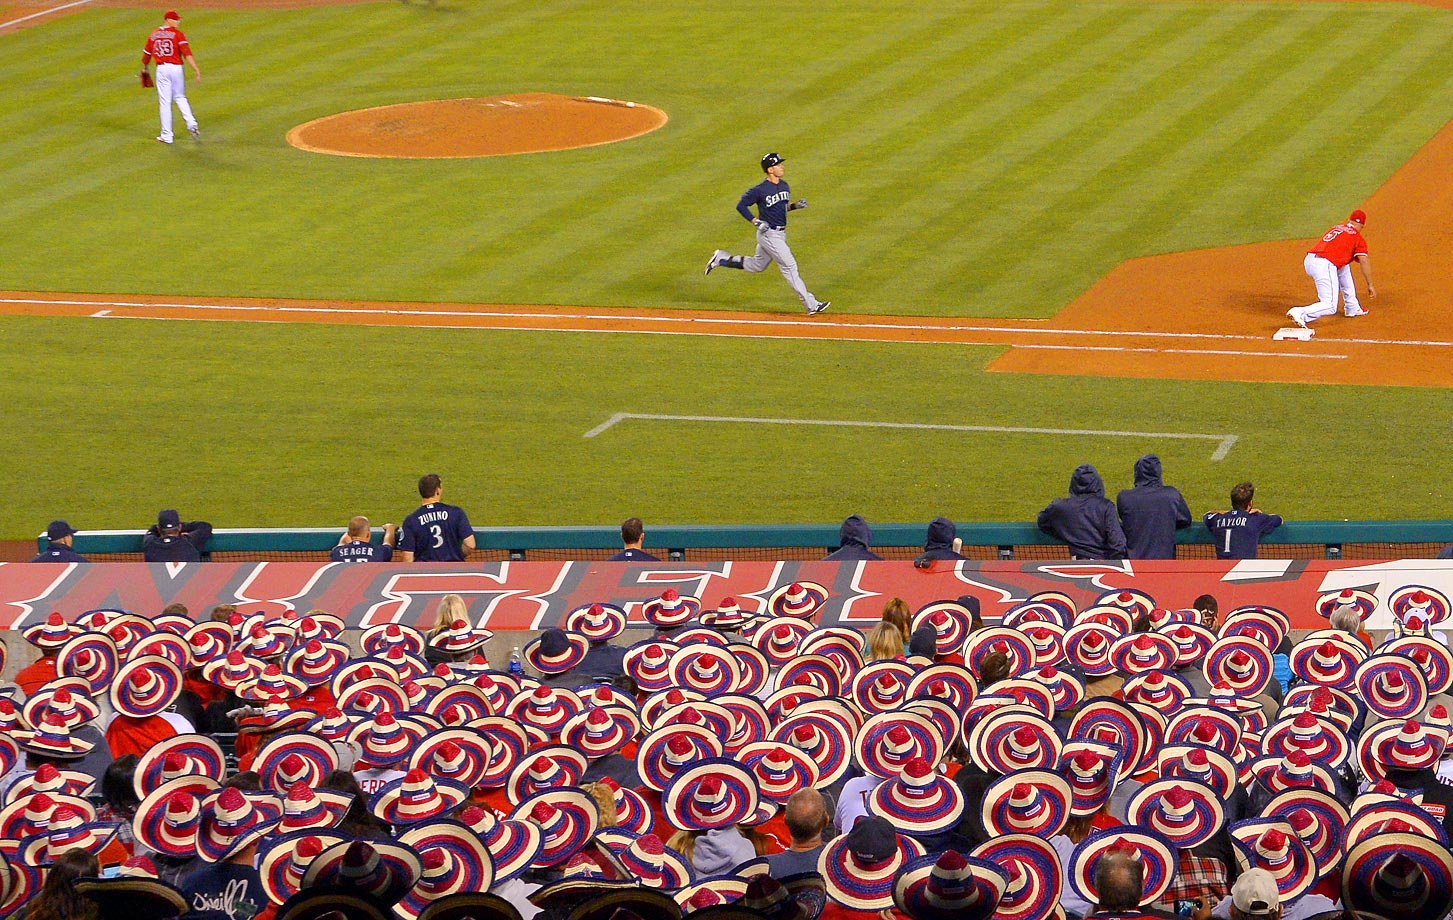 Angels fans wear sombreros on May 5, breaking a world record during a game against the Mariners.